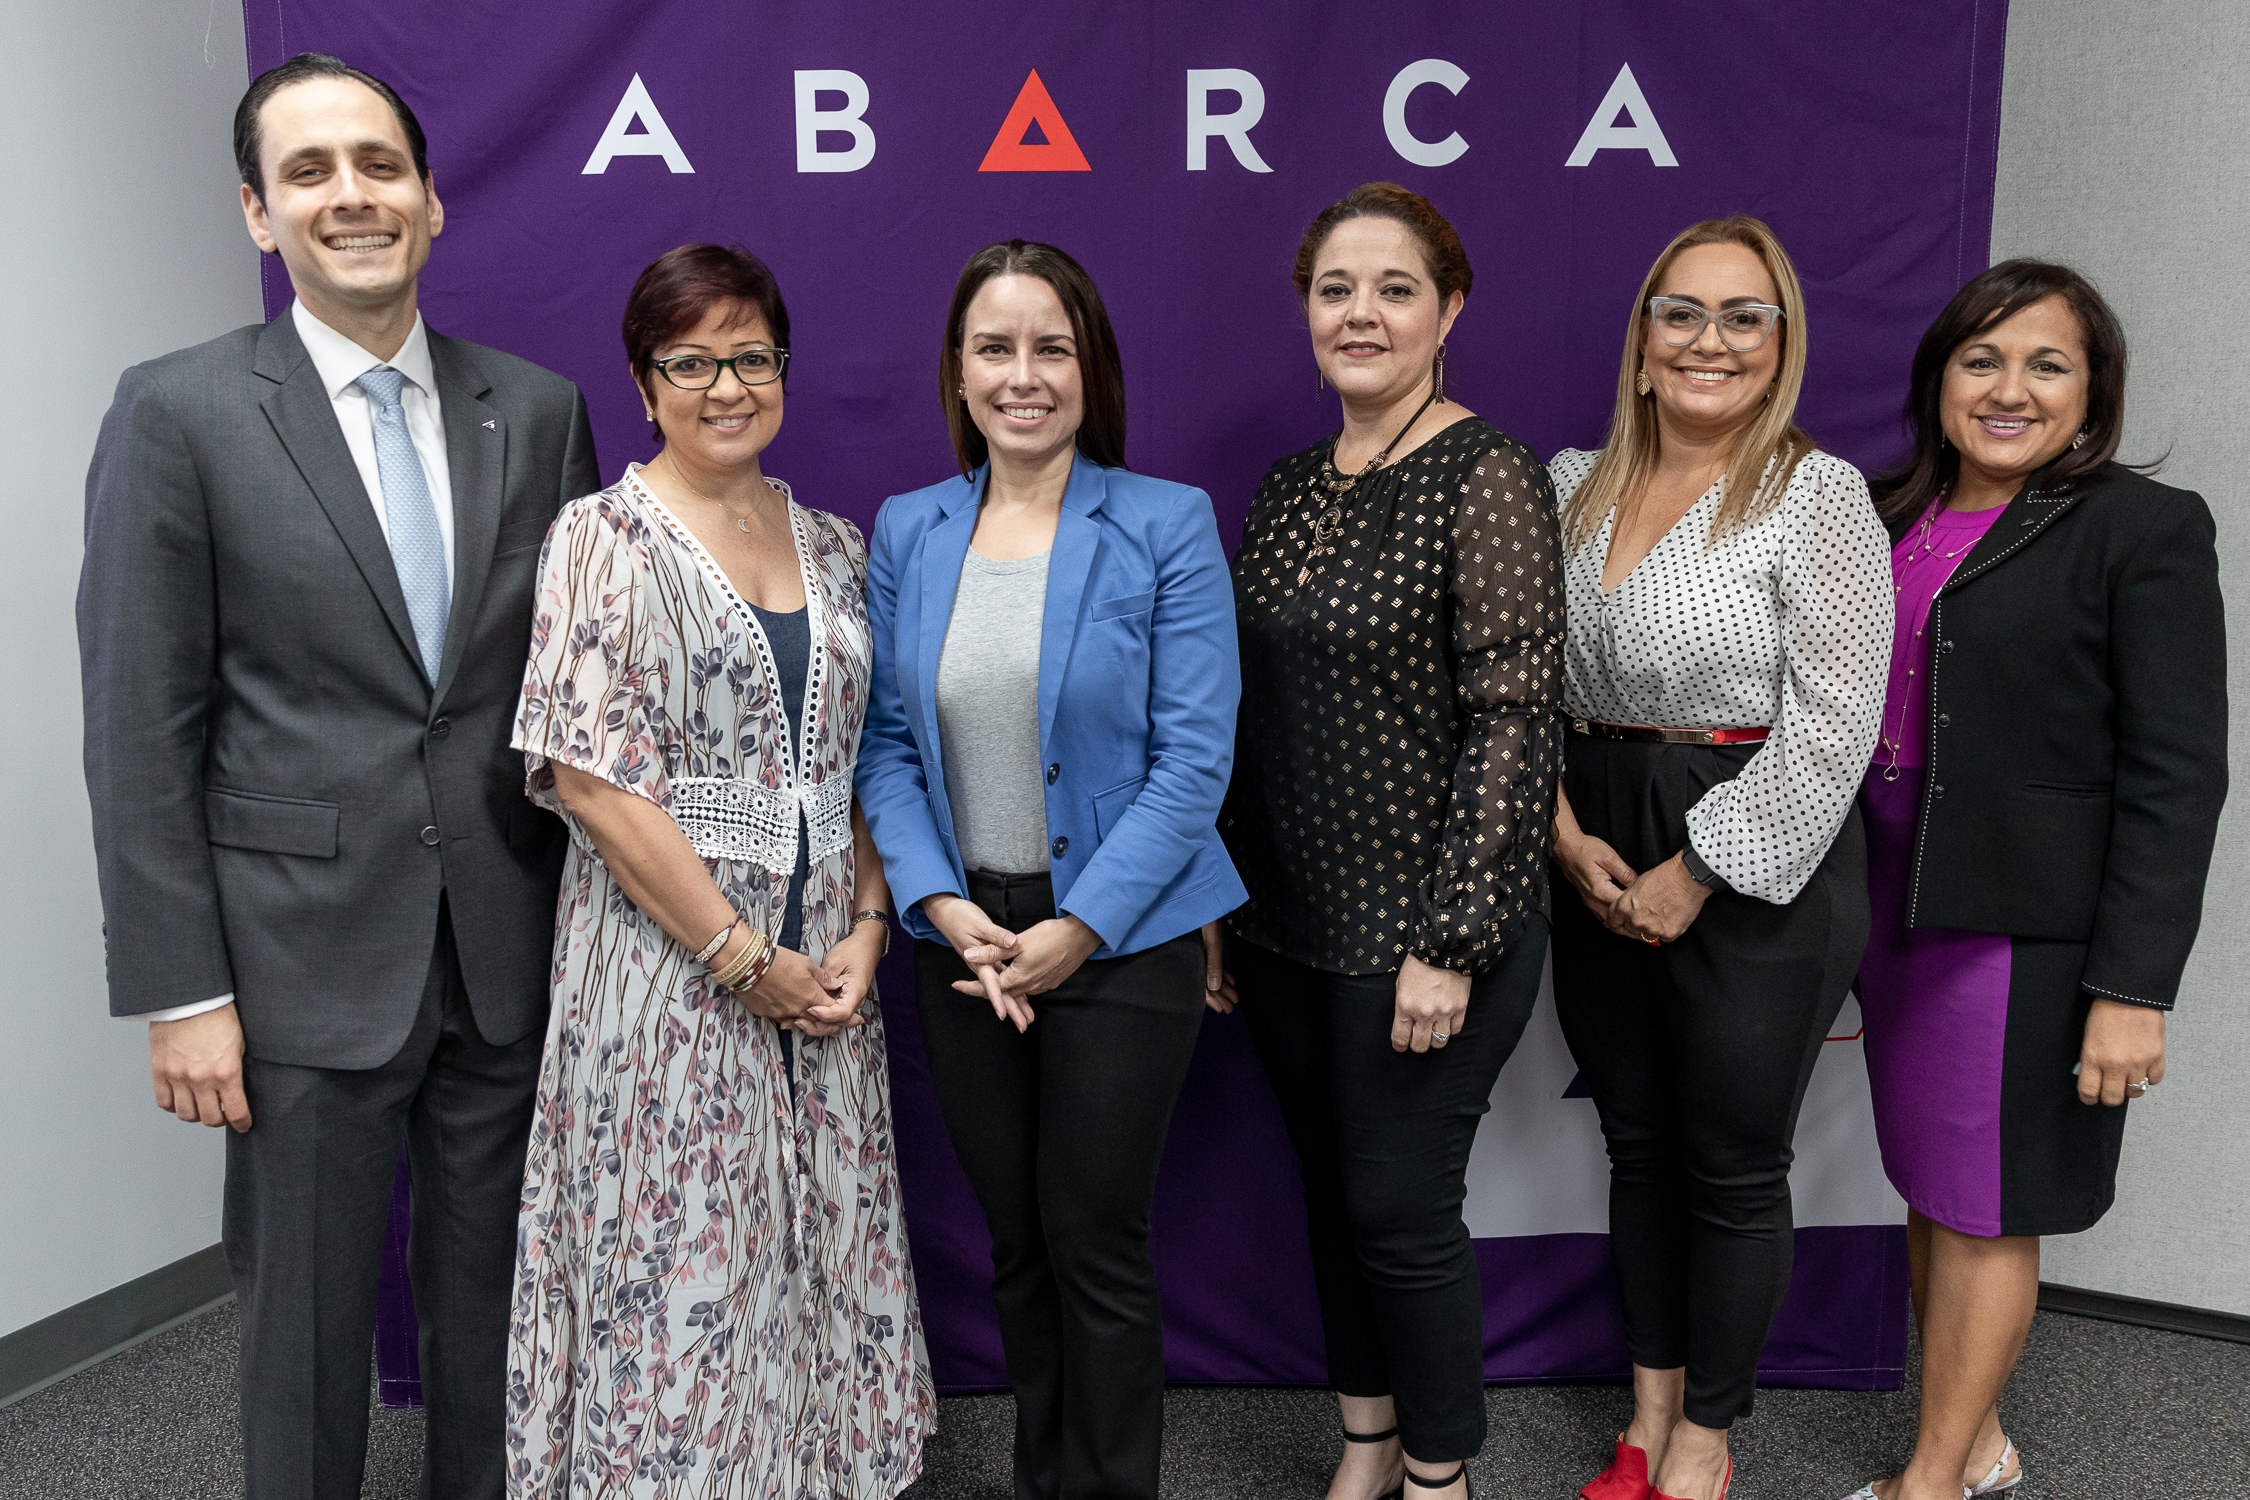 Abarca Health: Better Care